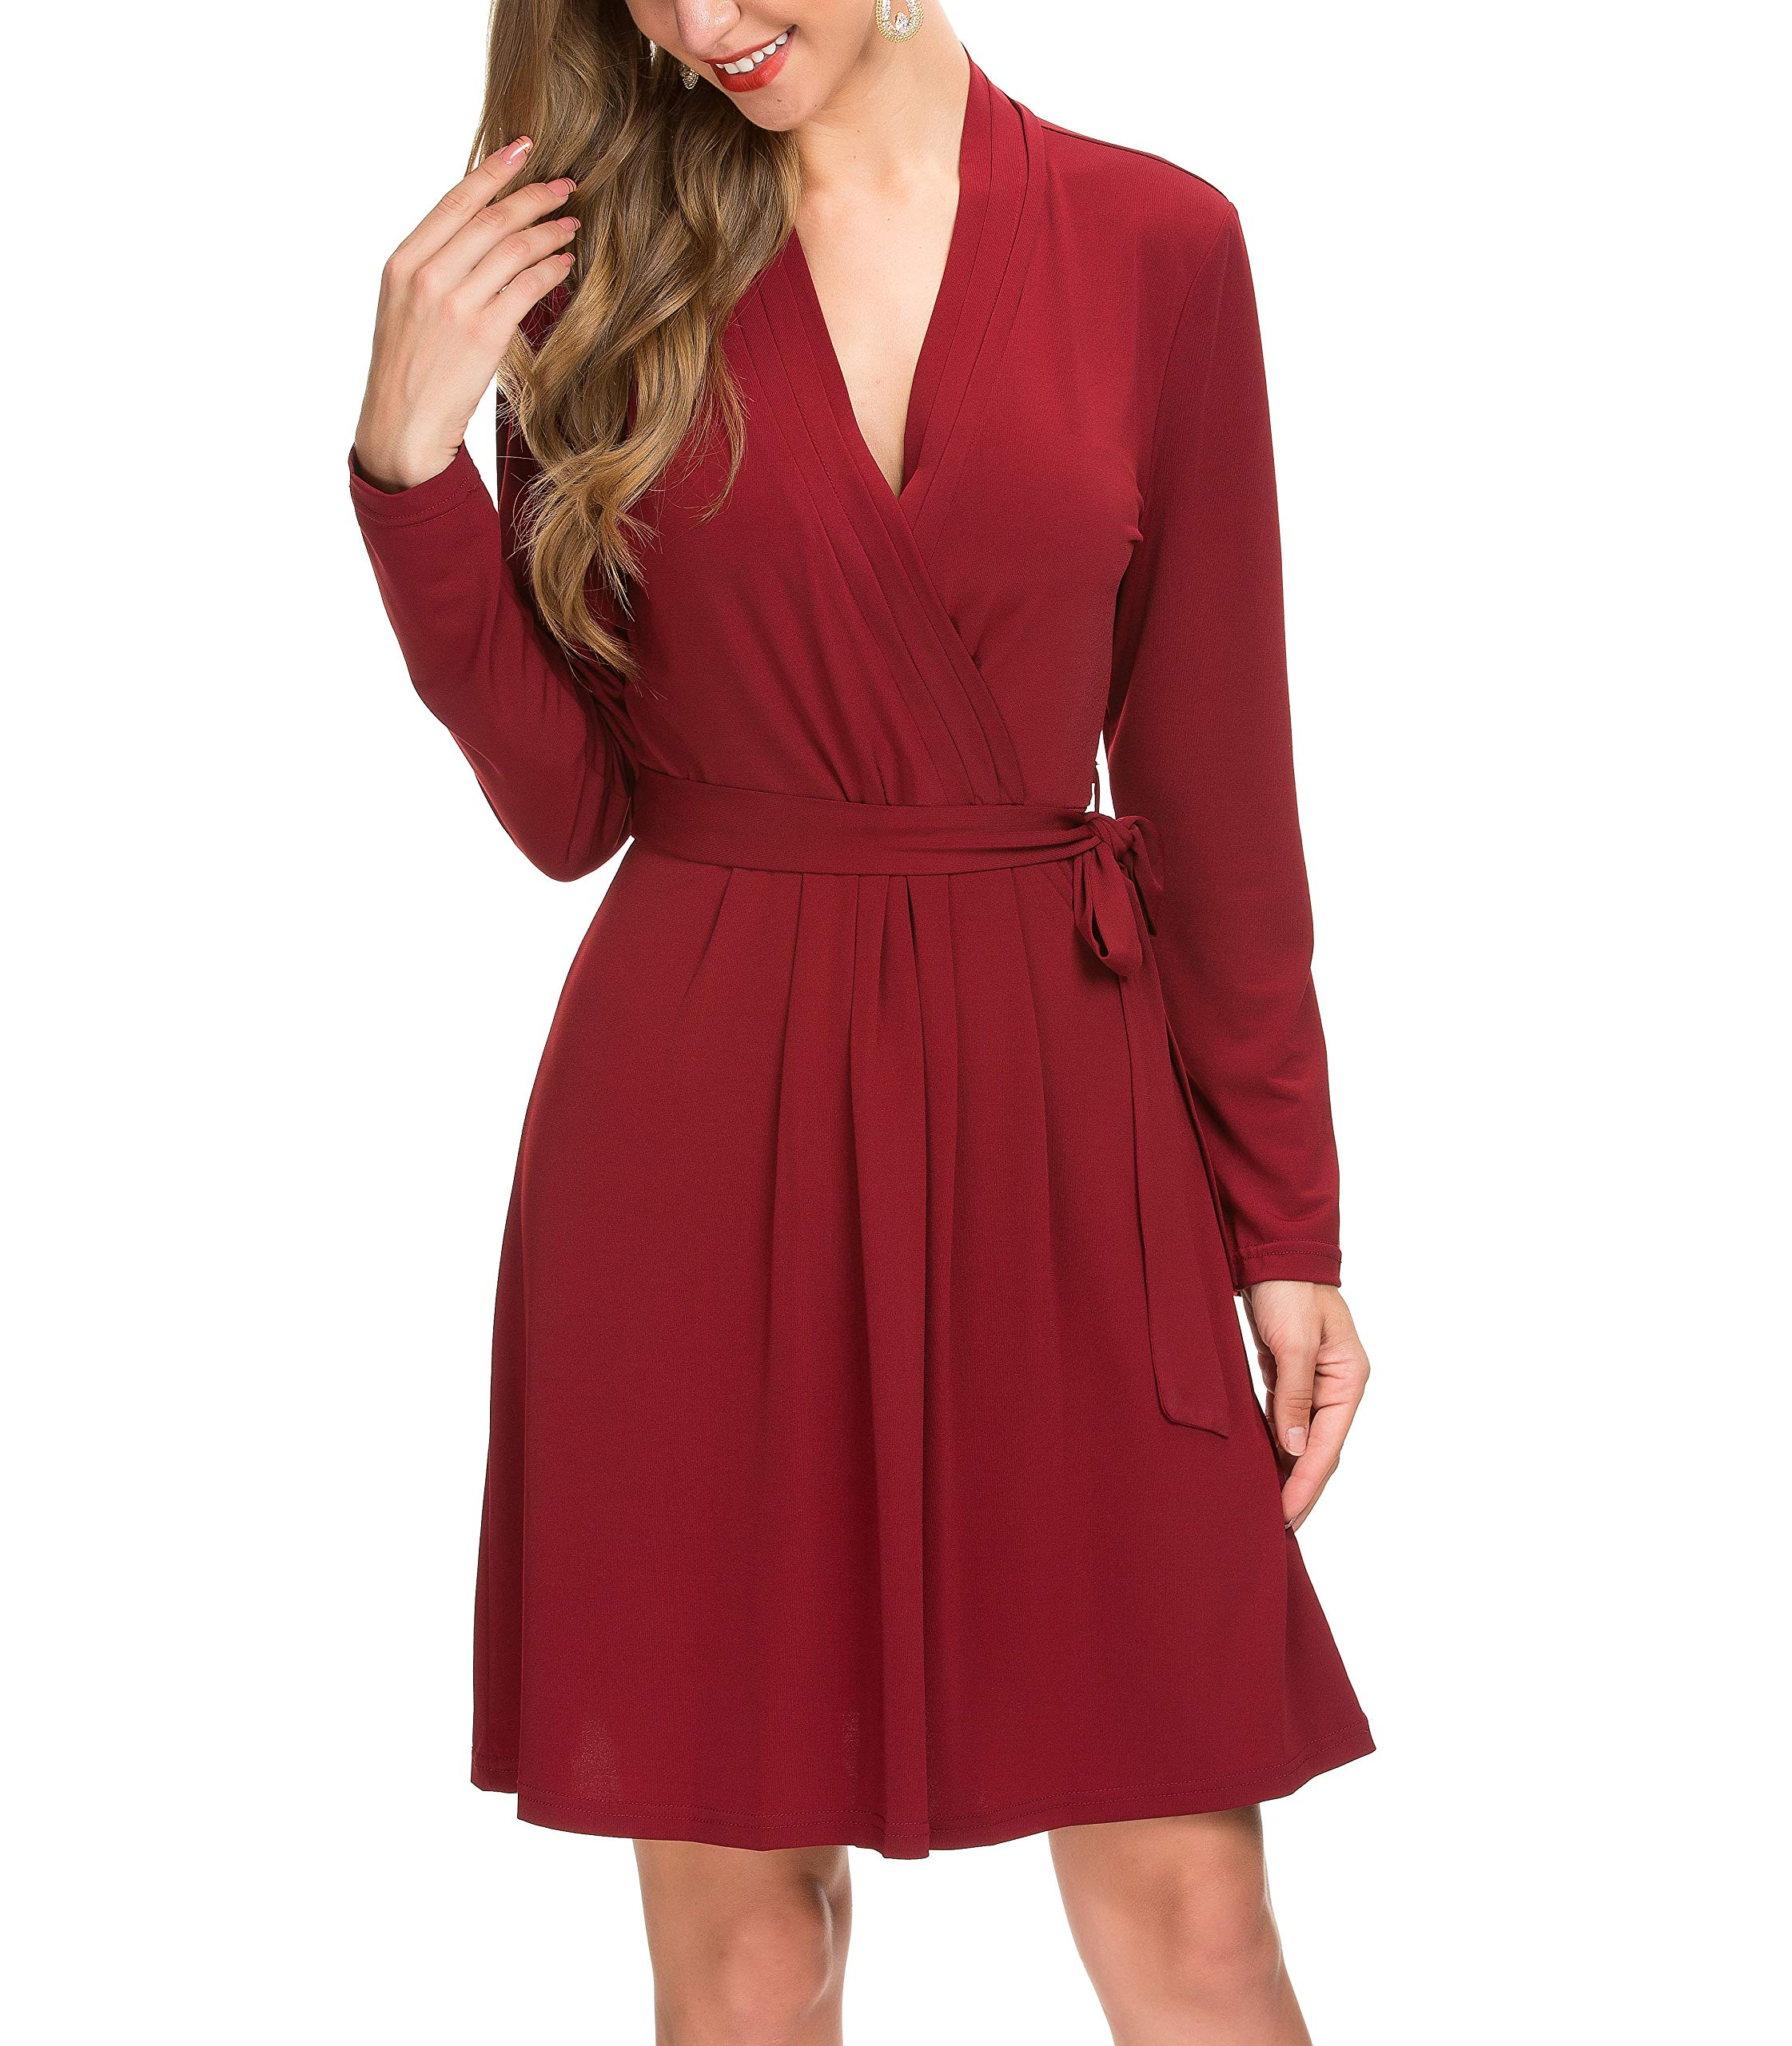 Available at Amazon: Le Vonfort Women's Casual Dress Crossover V Neck Swing A Line Work Belted Faux Wrap Dress